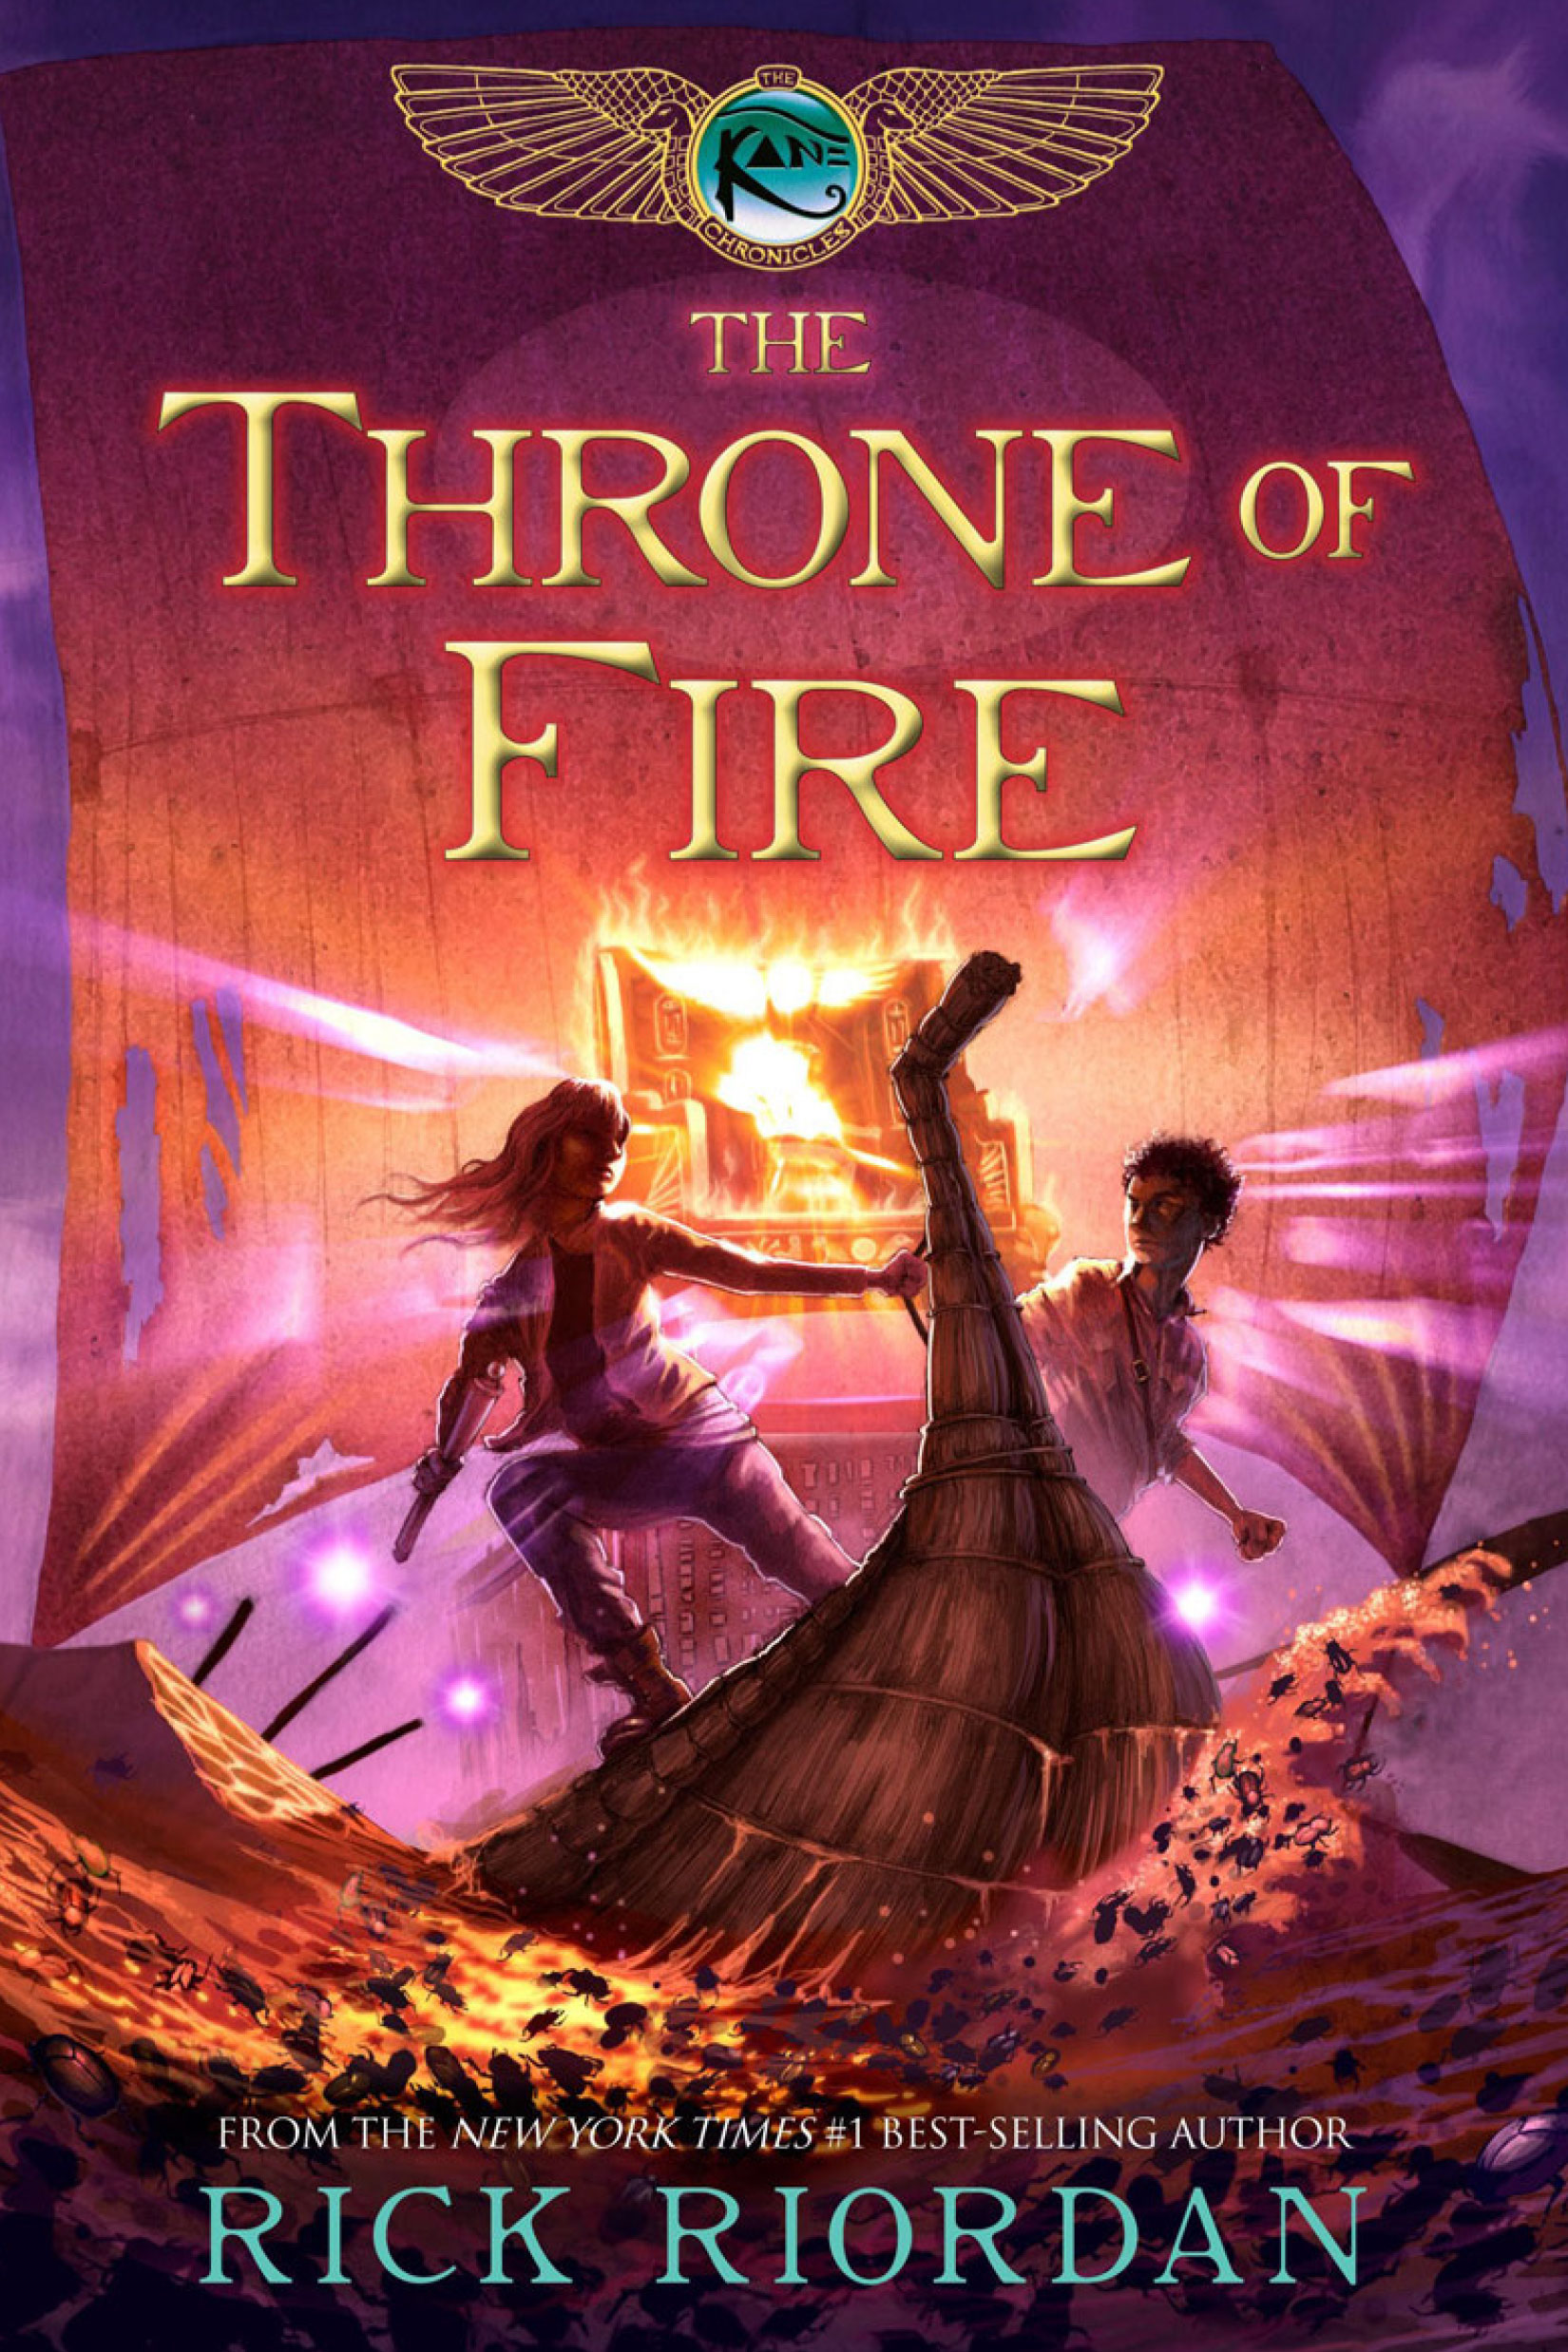 Cover Image of The Throne of Fire